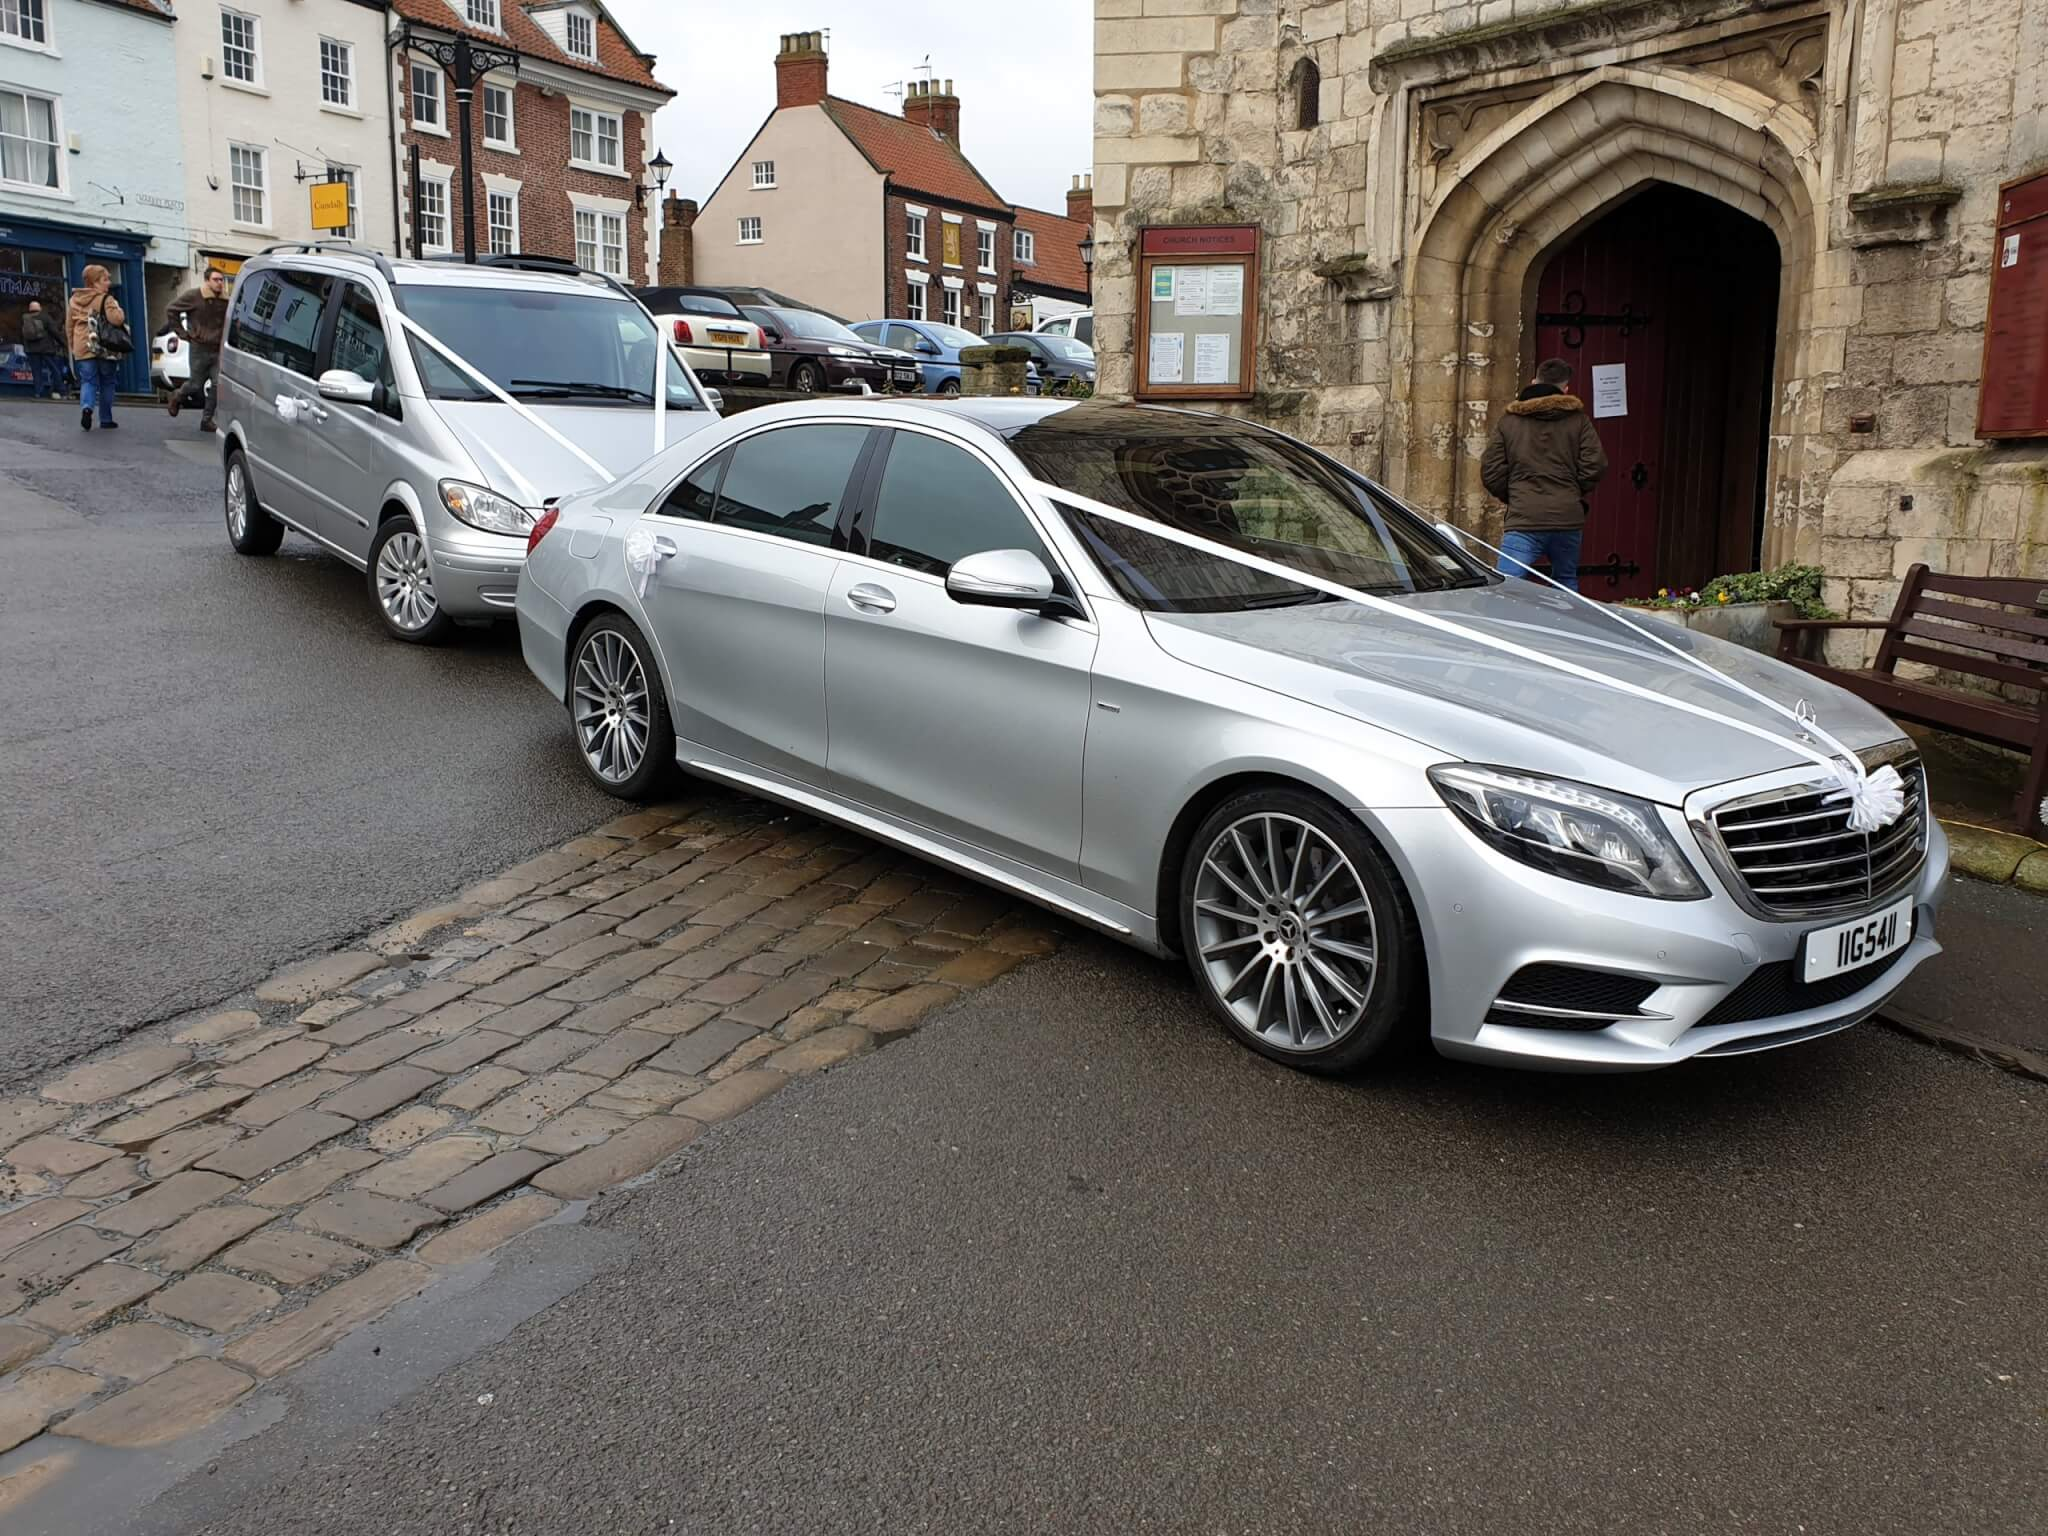 2 Silver Mercedes Wedding Cars Outside a Church In Malton